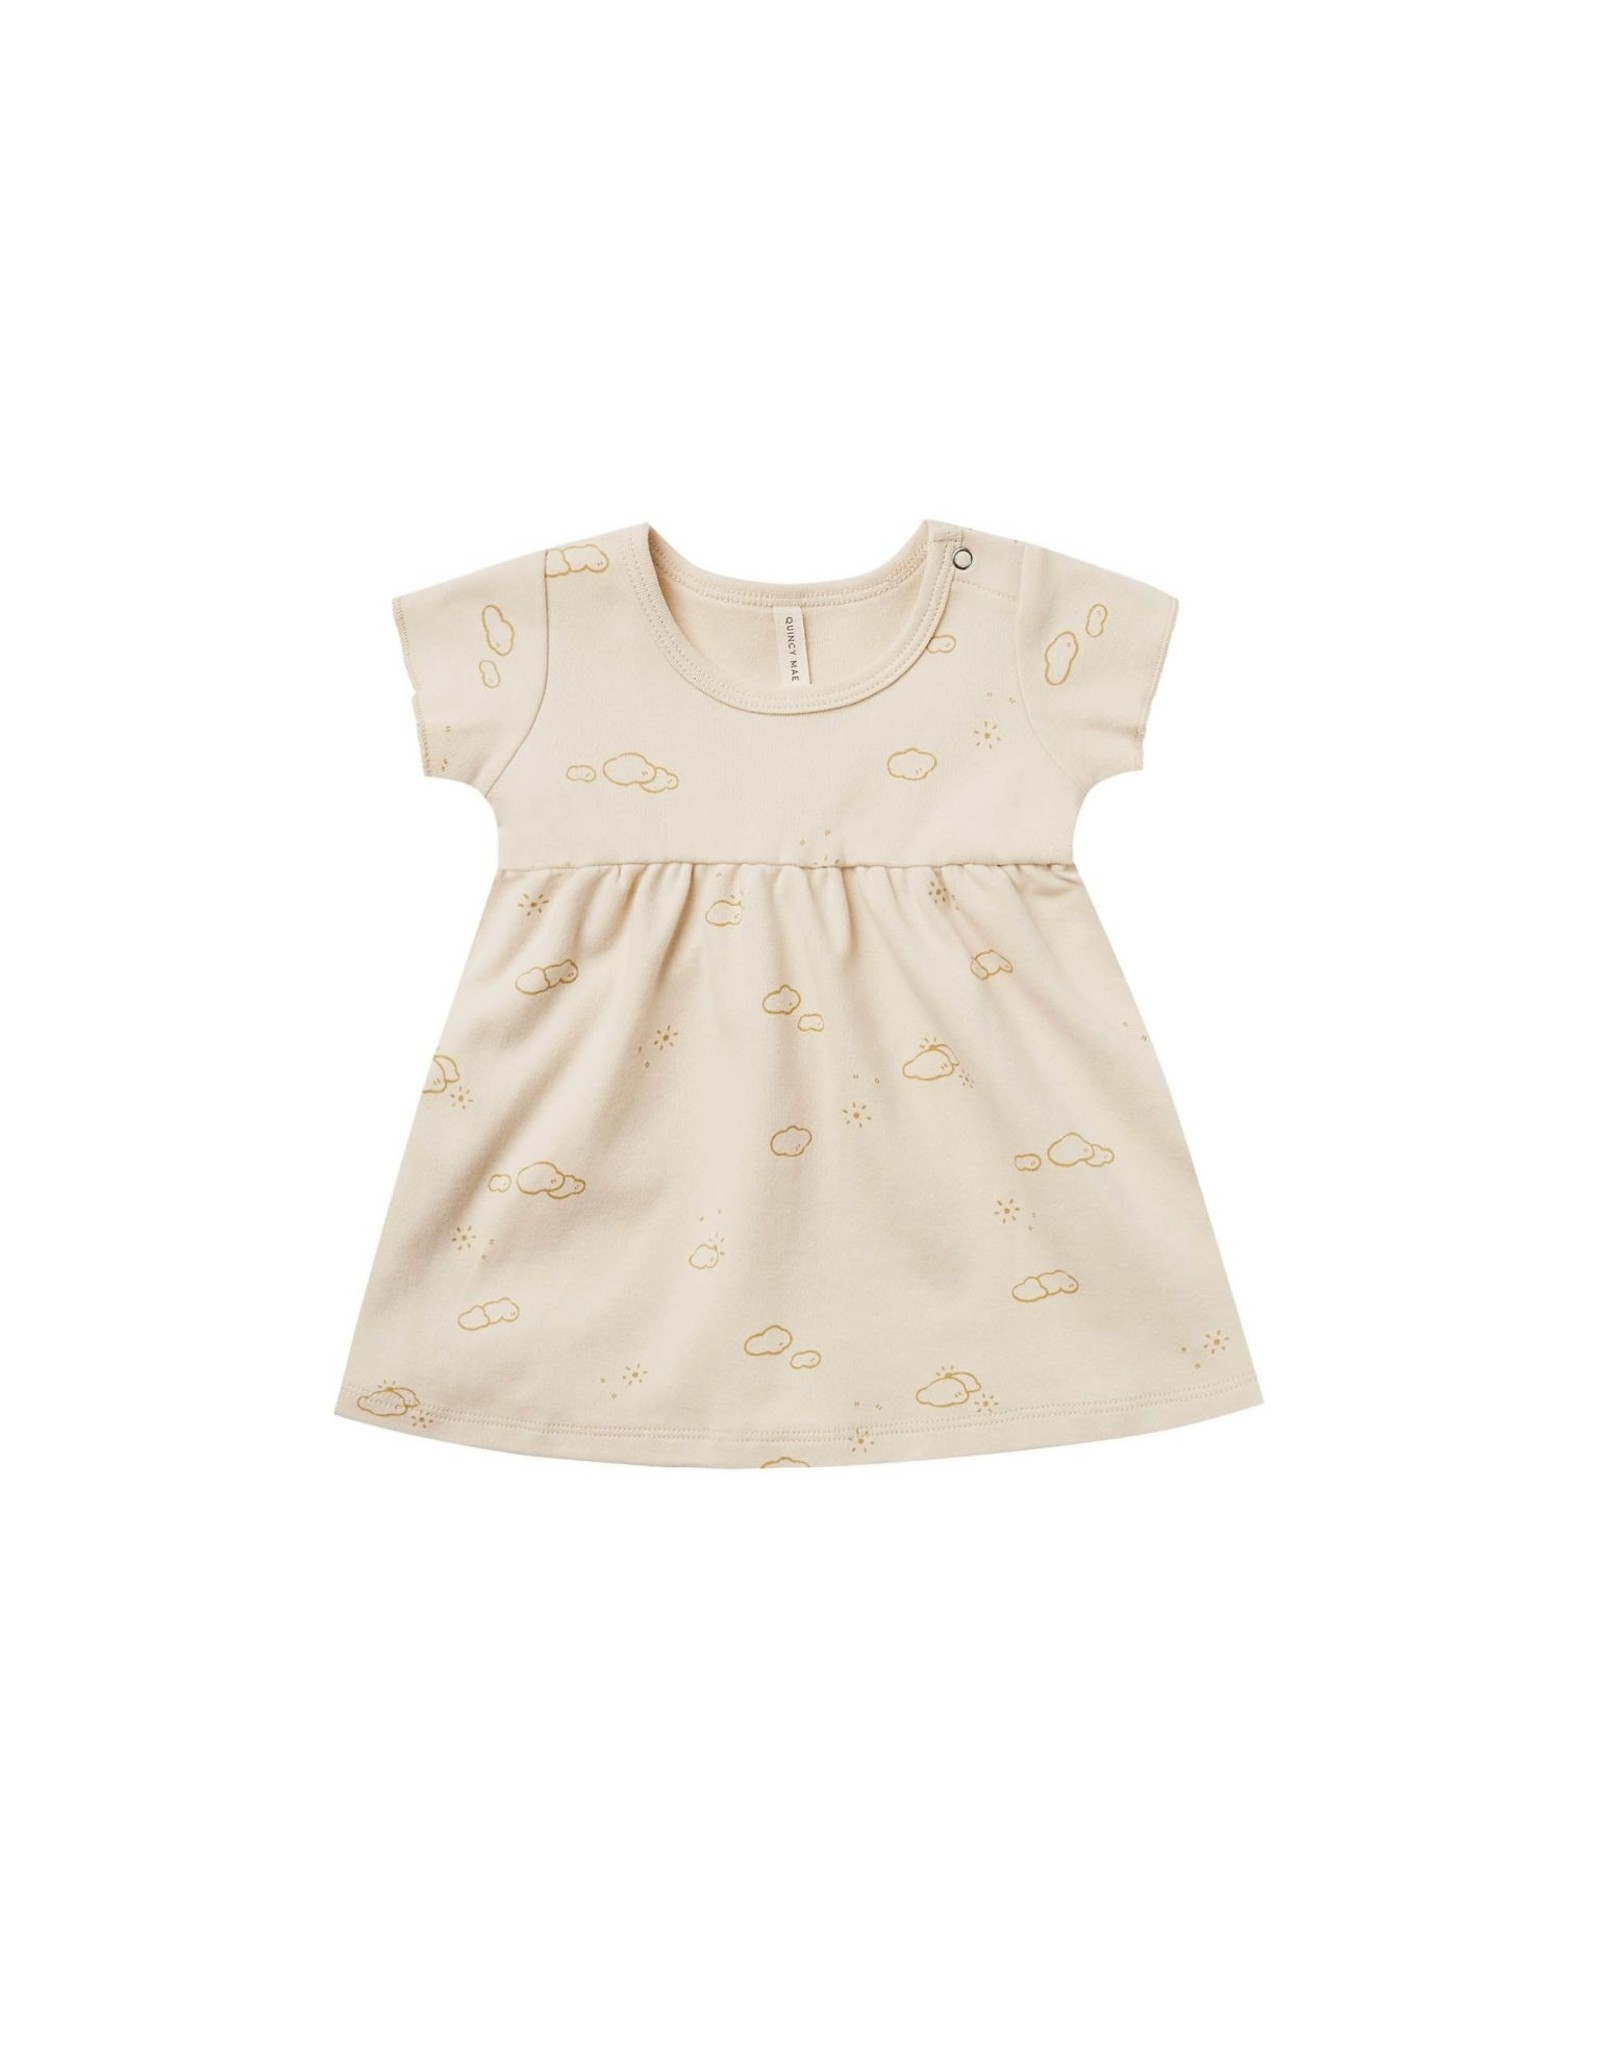 Quincy Mae ss baby dress- natural